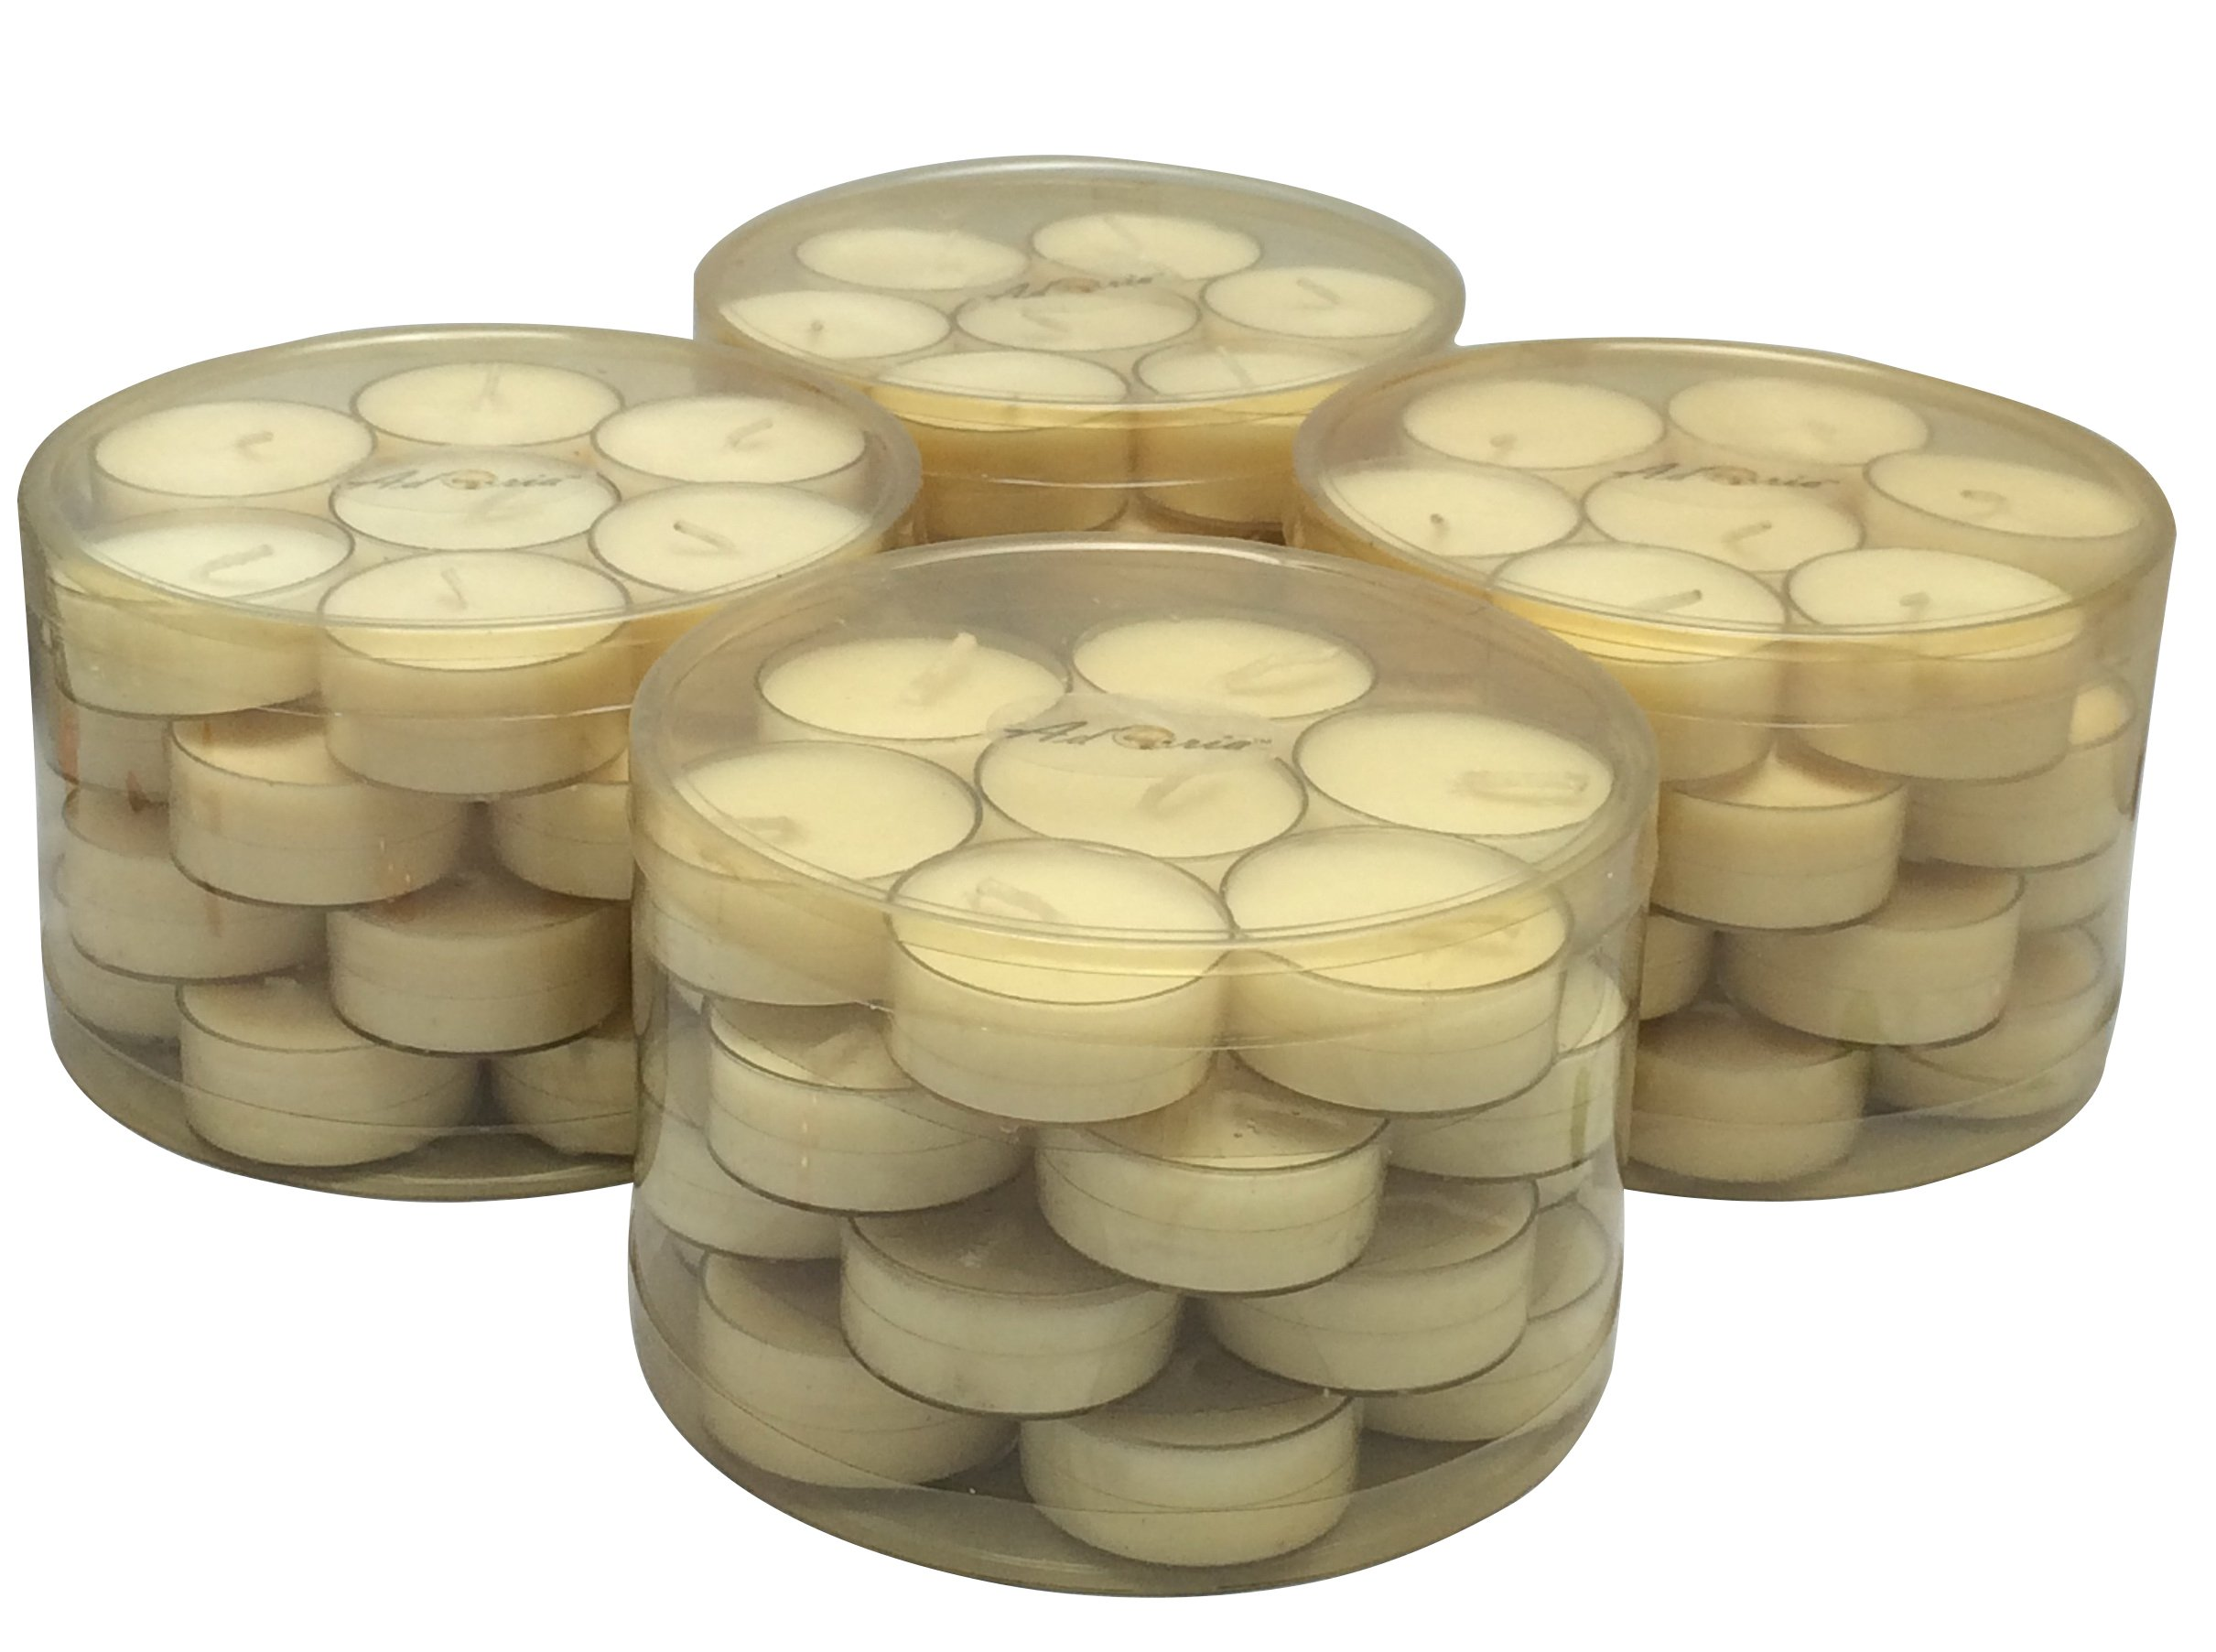 Adoria Tea Light Candles Gift Set - 100% Natural Soy Wax Candle Unscent in Clear Cup 112 Packs Bulk for Home Decor,Outdoor,Wedding,Parties and Gift-Over 4 Burning Hours by Adoria